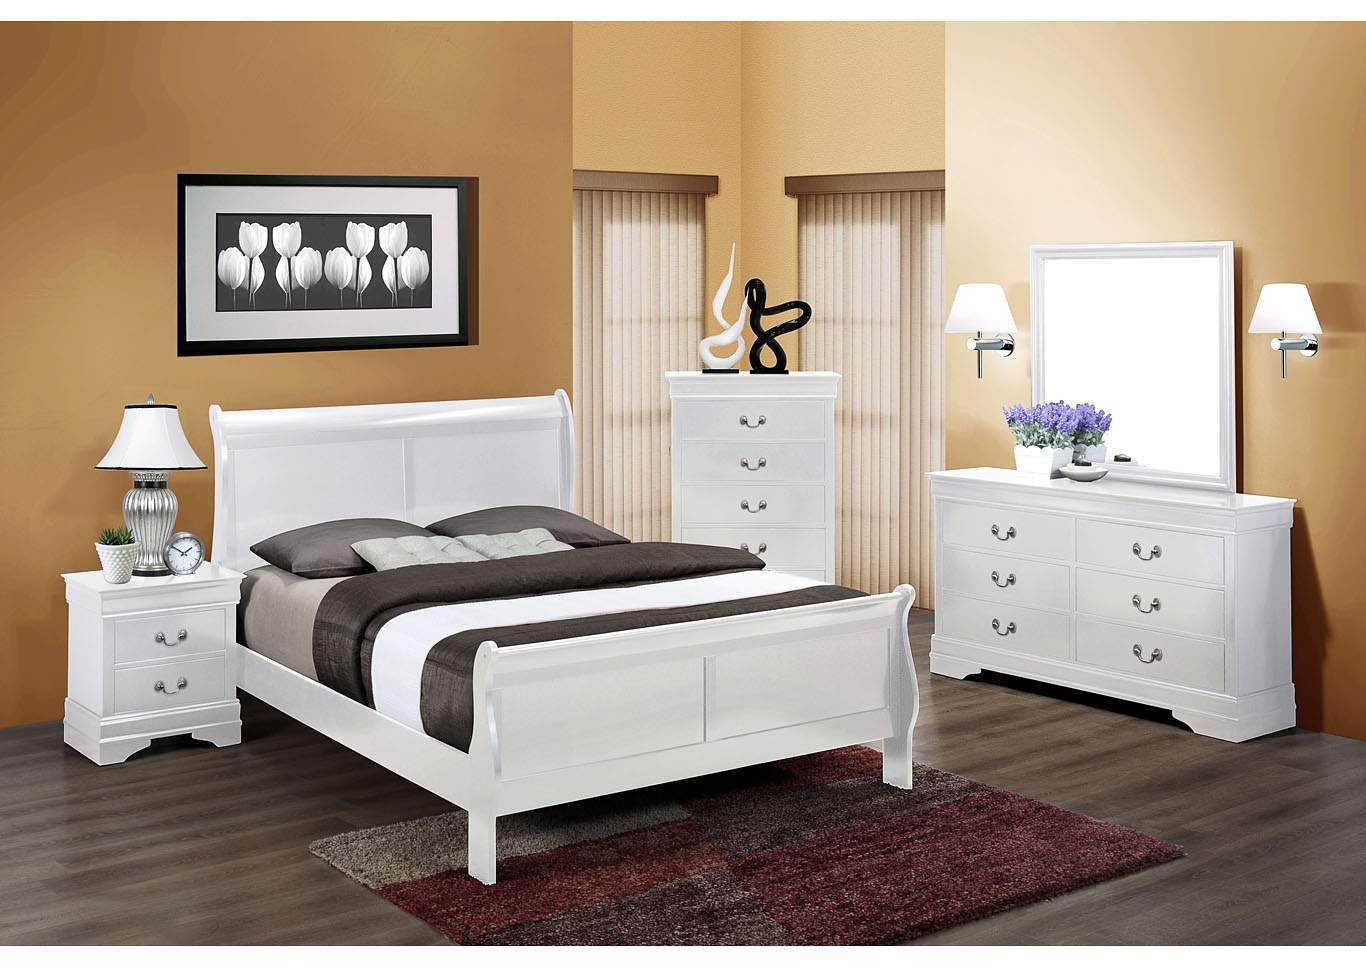 Louis Philip White California King Platform Bed w/6 Drawer Dresser and Mirror,Crown Mark